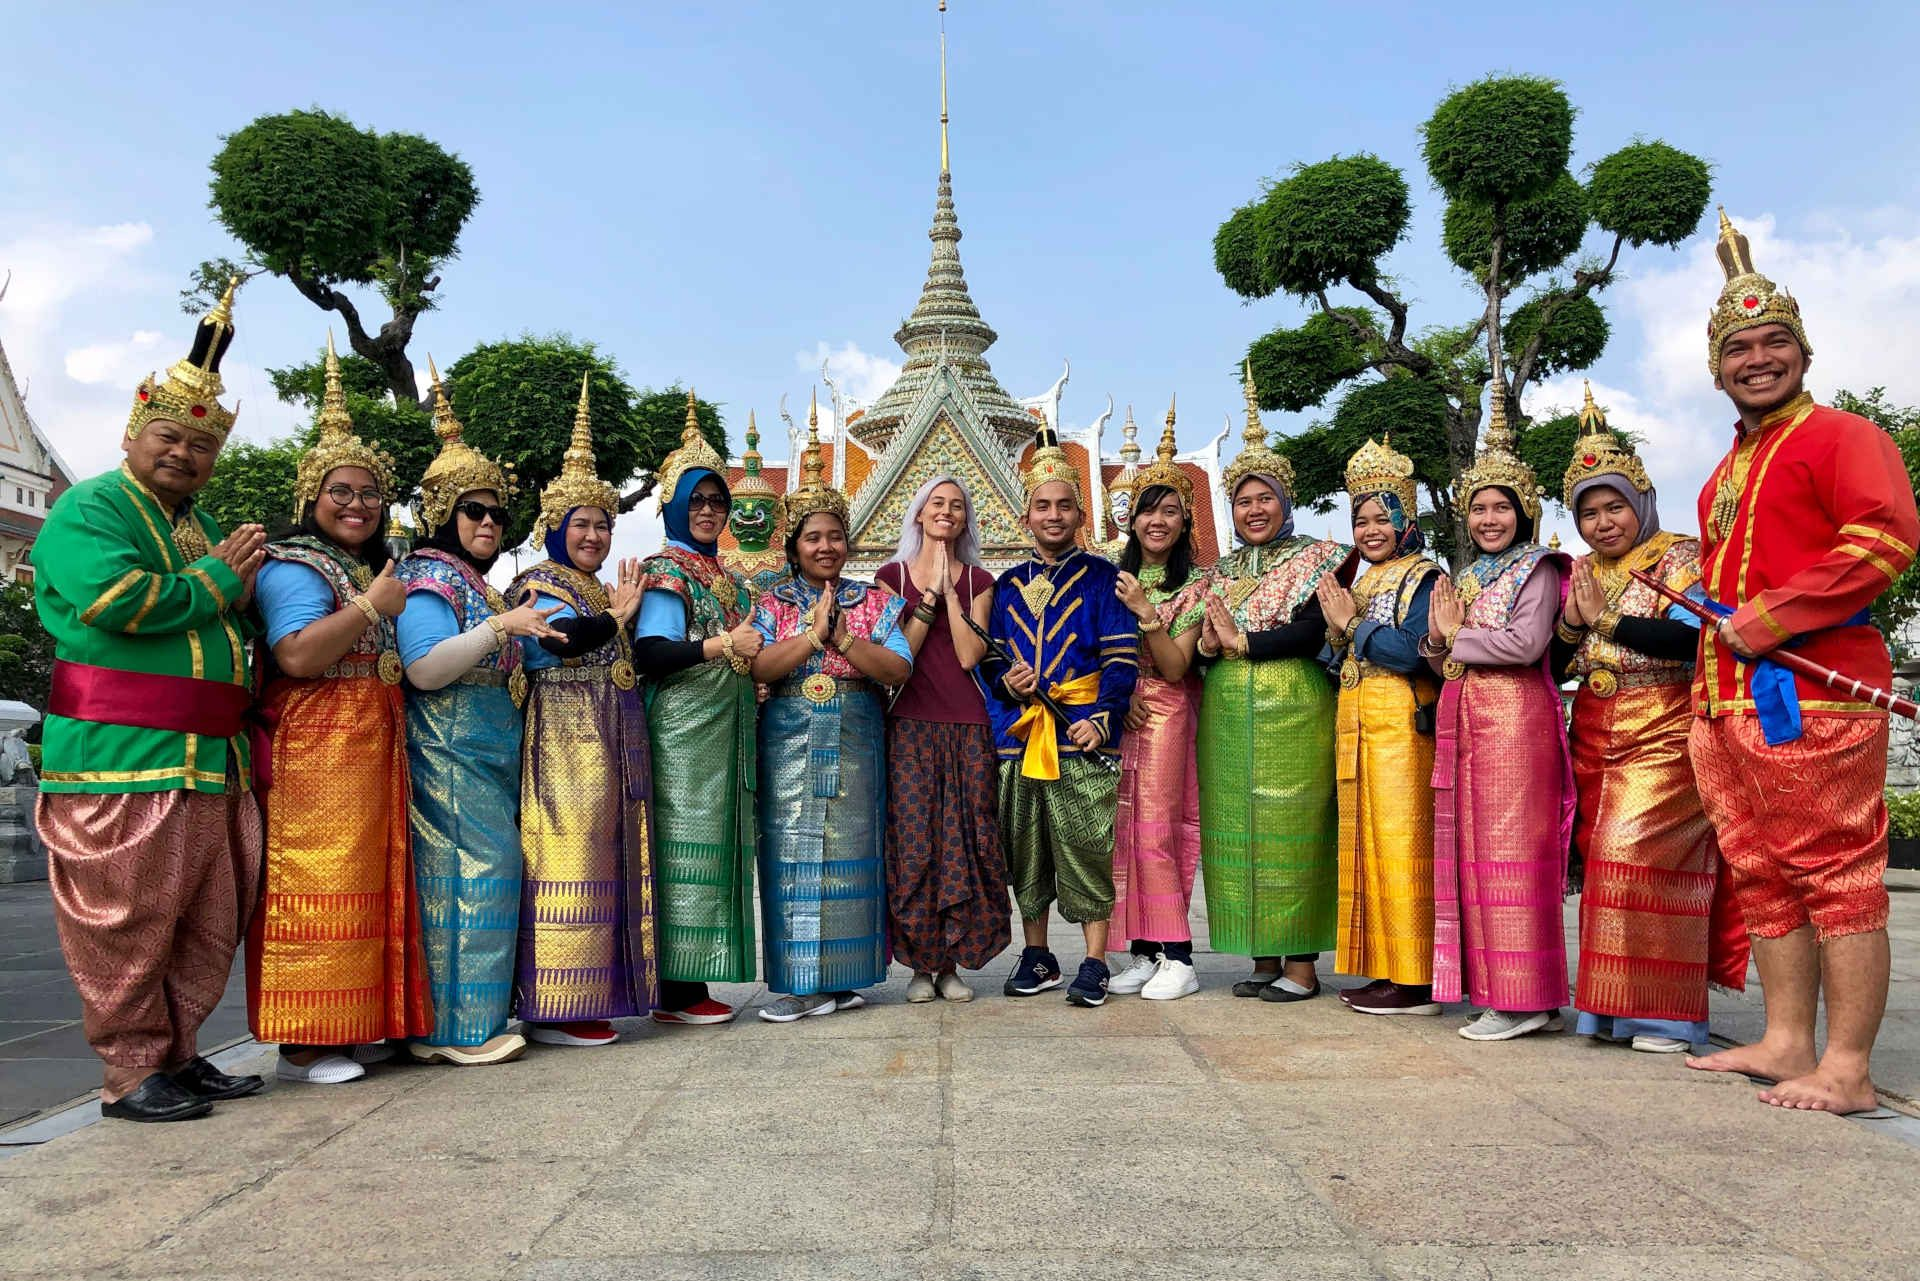 A group of Indonesian tourists posing in traditional Thai costumes at Wat Arun